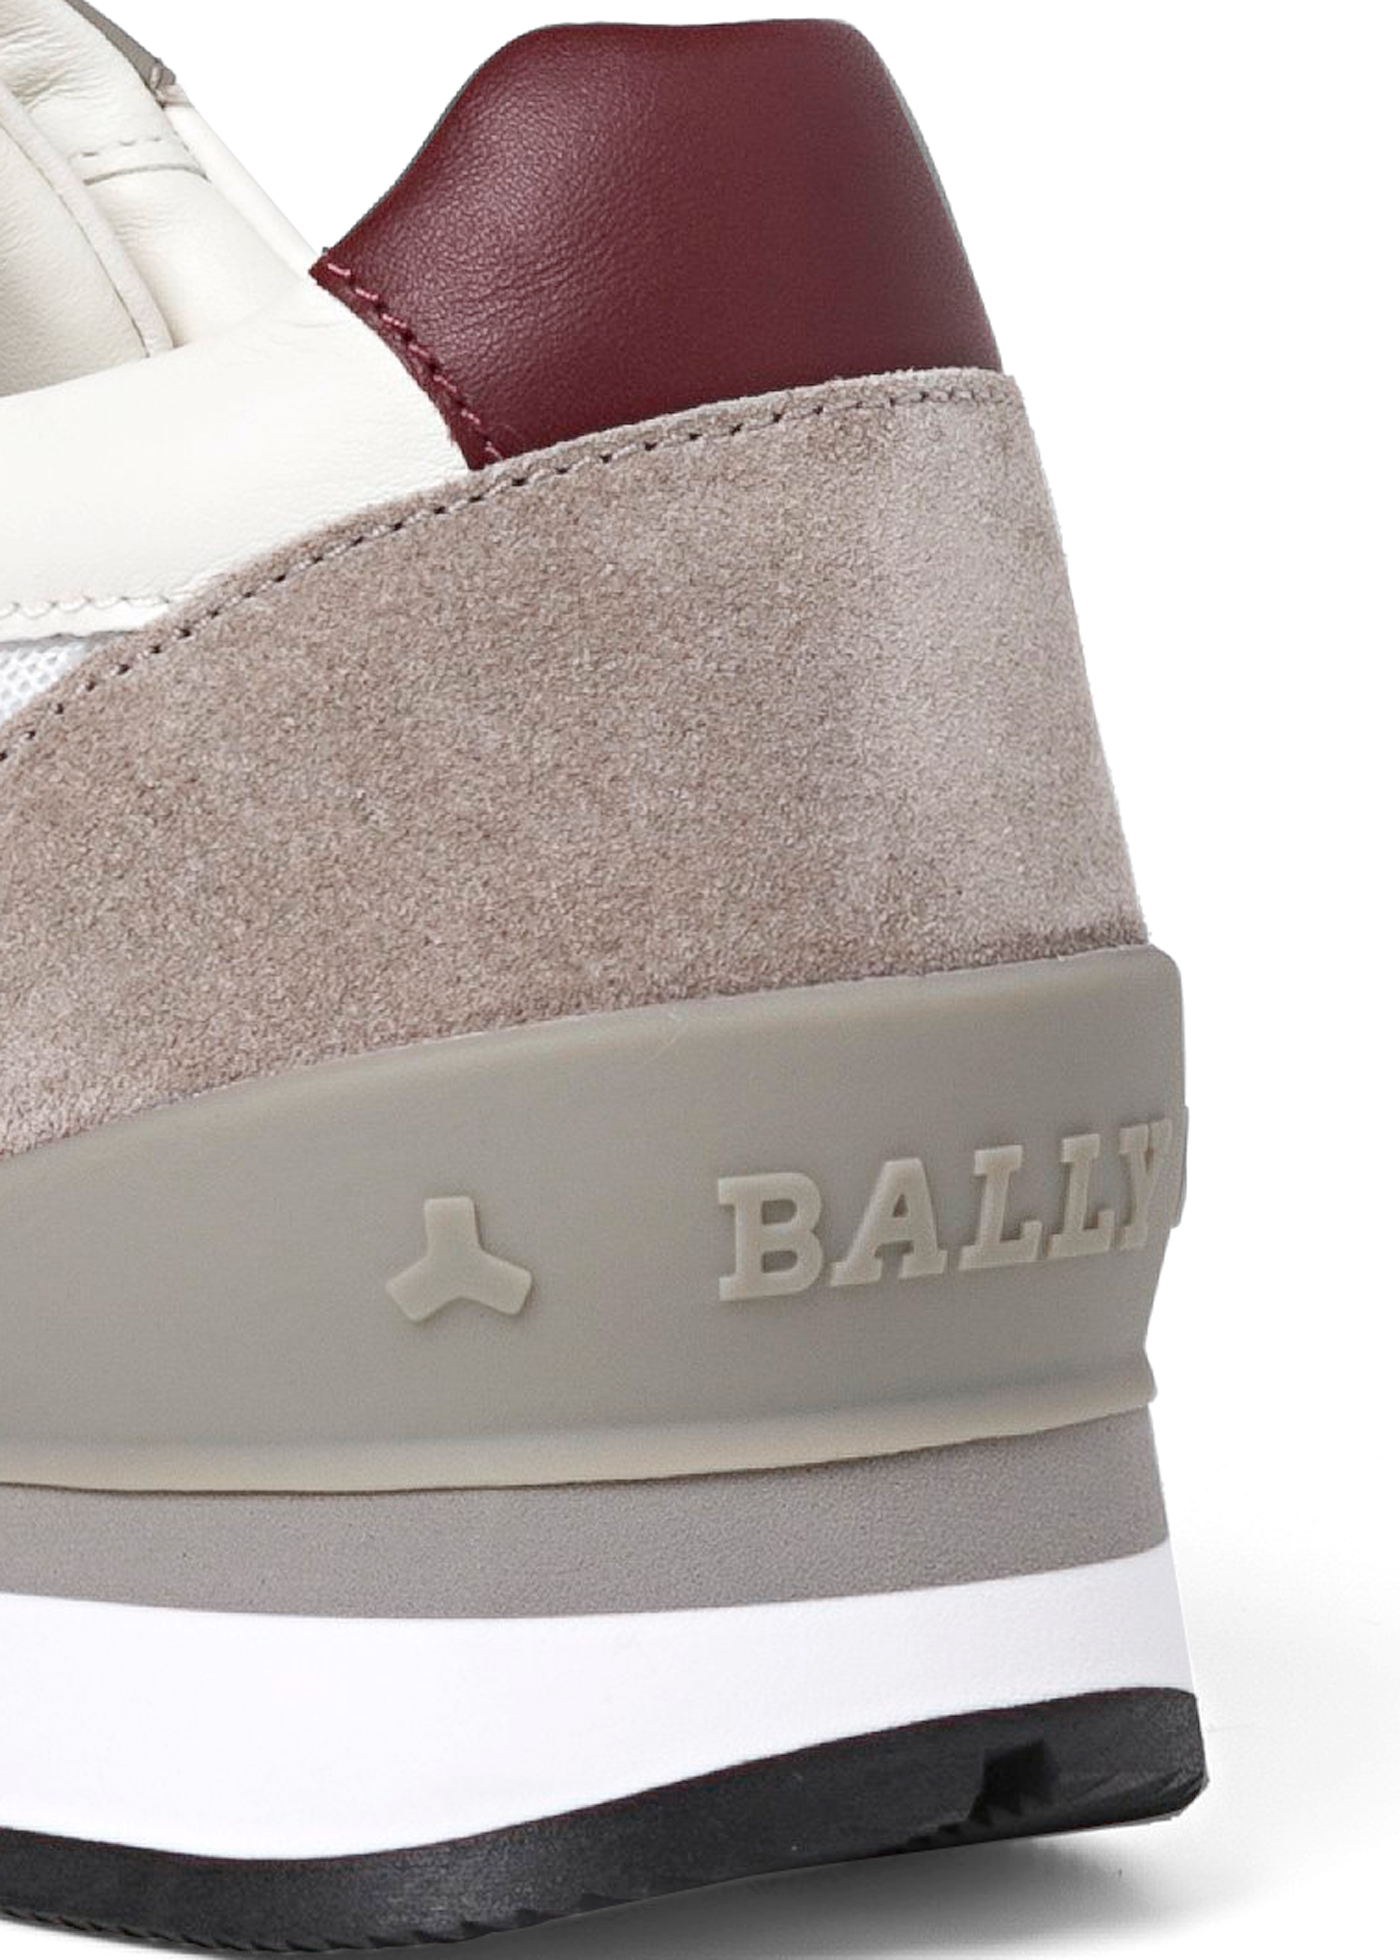 GISMO-T-WG/11 SNEAKER image number 3